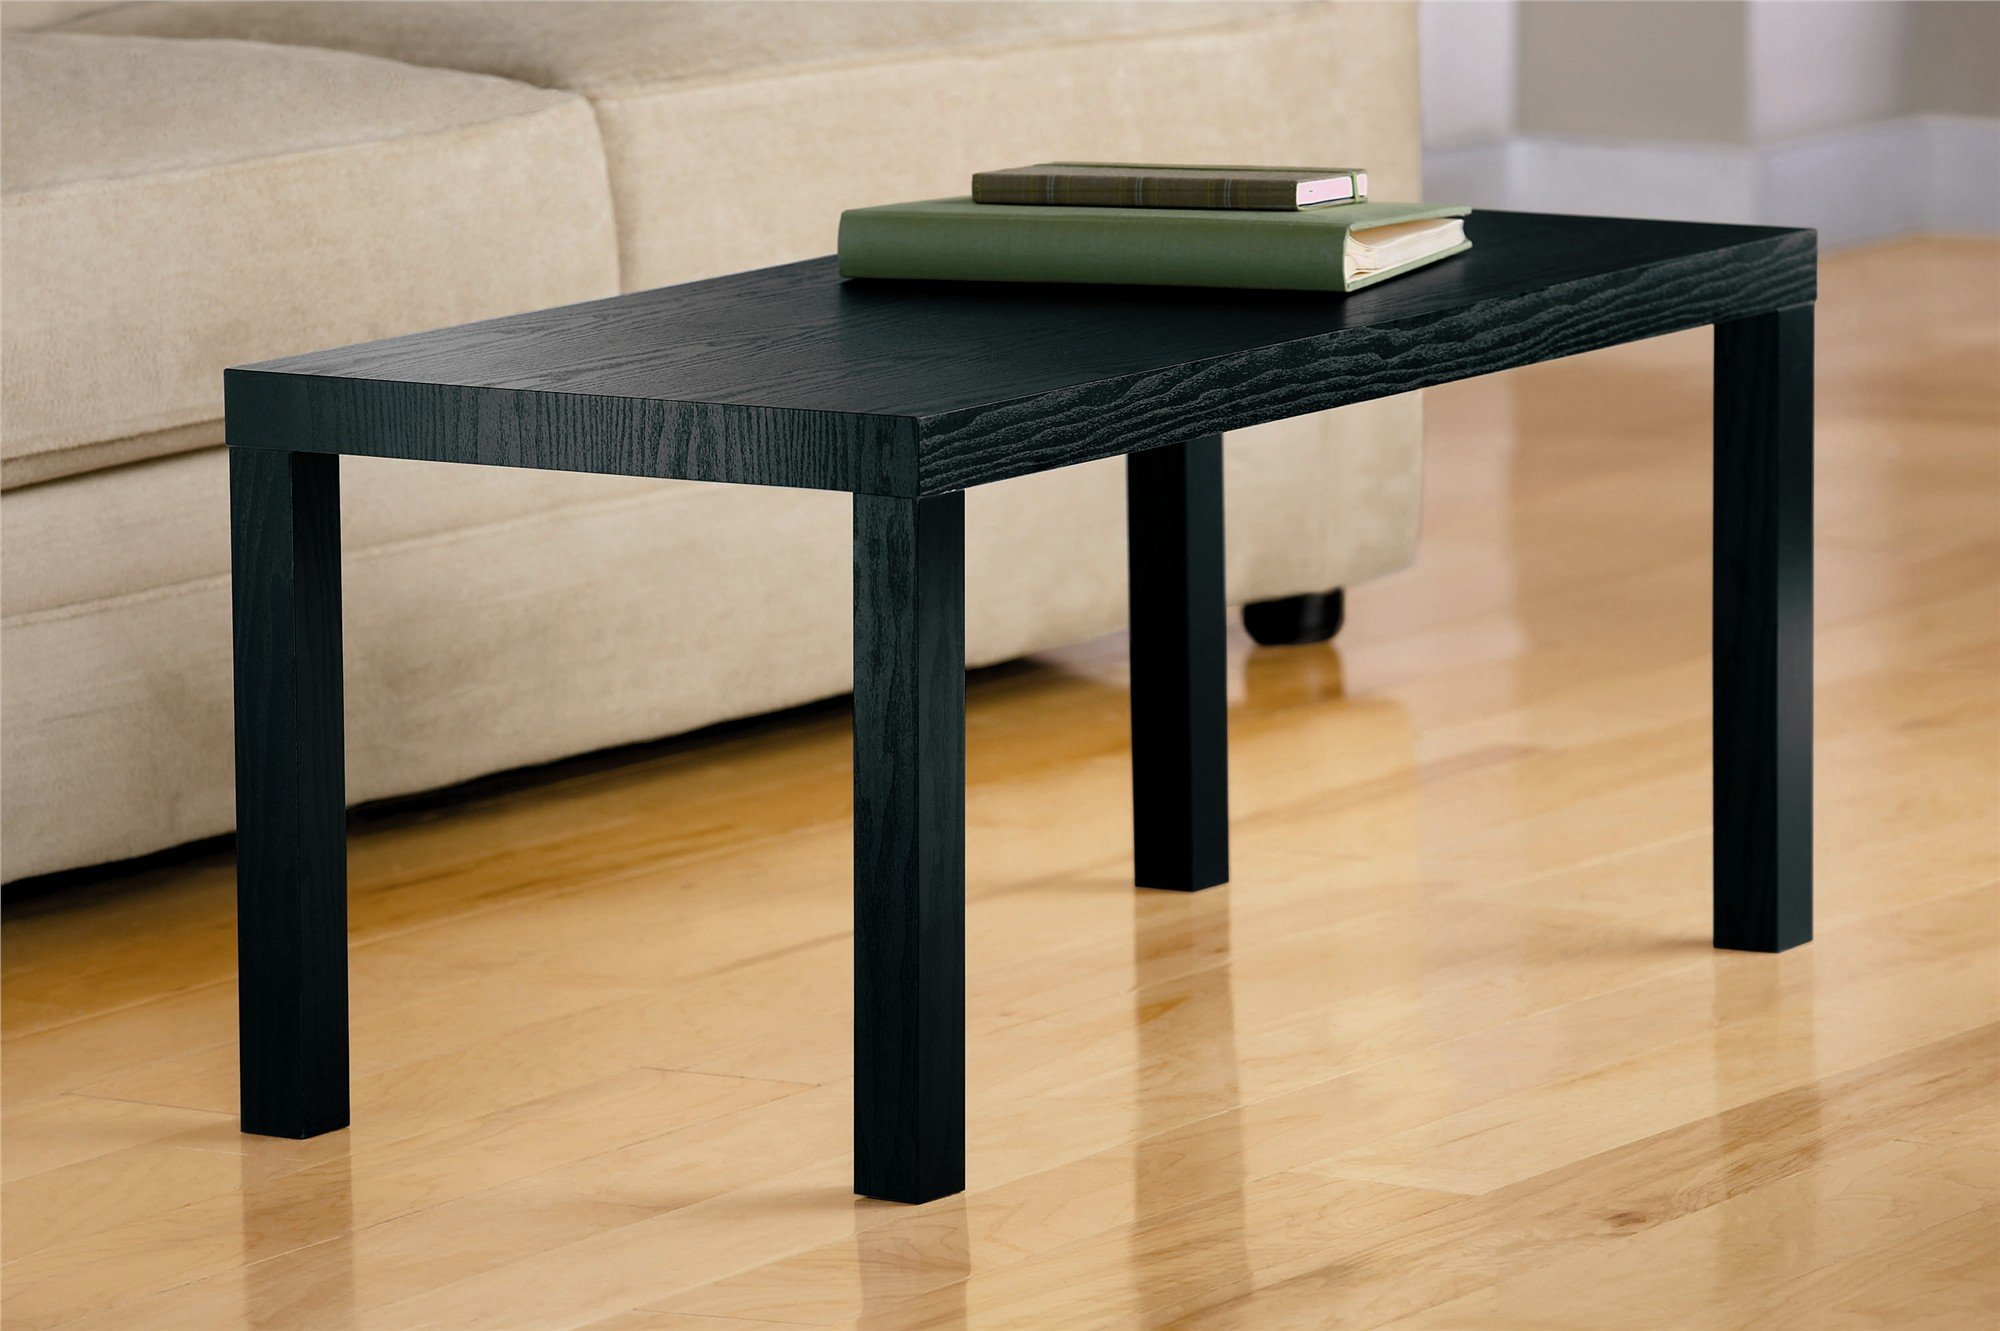 galleon dhp parsons modern coffee table black wood grain. Black Bedroom Furniture Sets. Home Design Ideas